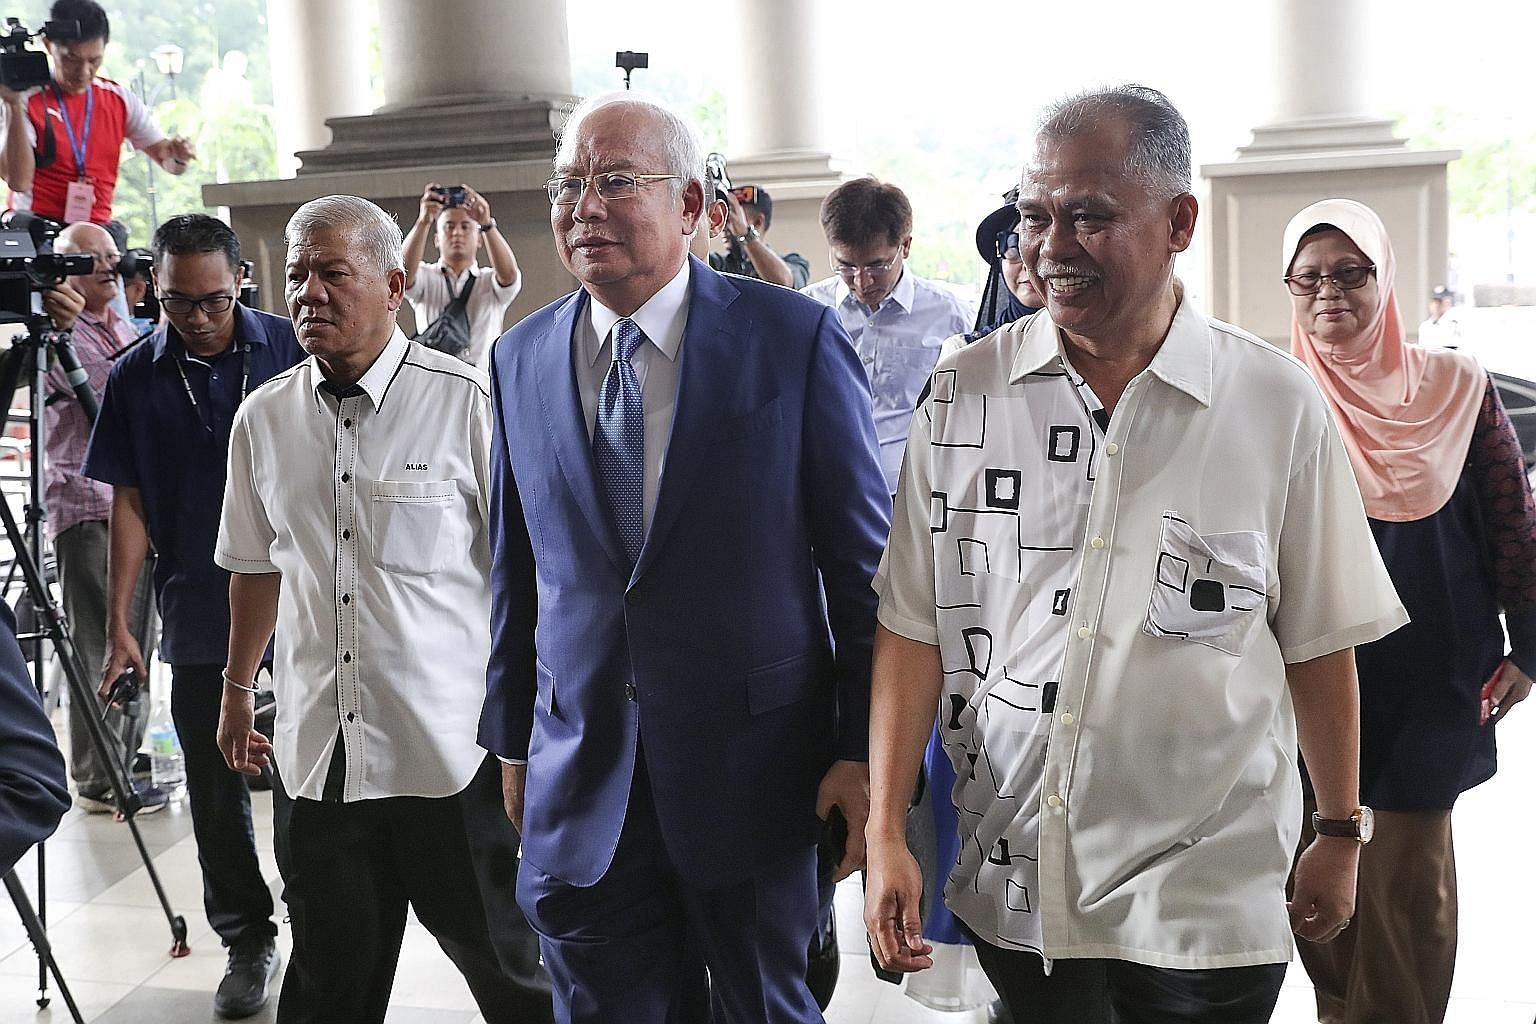 Former prime minister Najib Razak arriving with supporters at Kuala Lumpur High Court for his 1MDB trial yesterday. He faces 21 counts of money laundering and four counts of abuse of power for receiving illegal transfers totalling RM2.28 billion (S$7